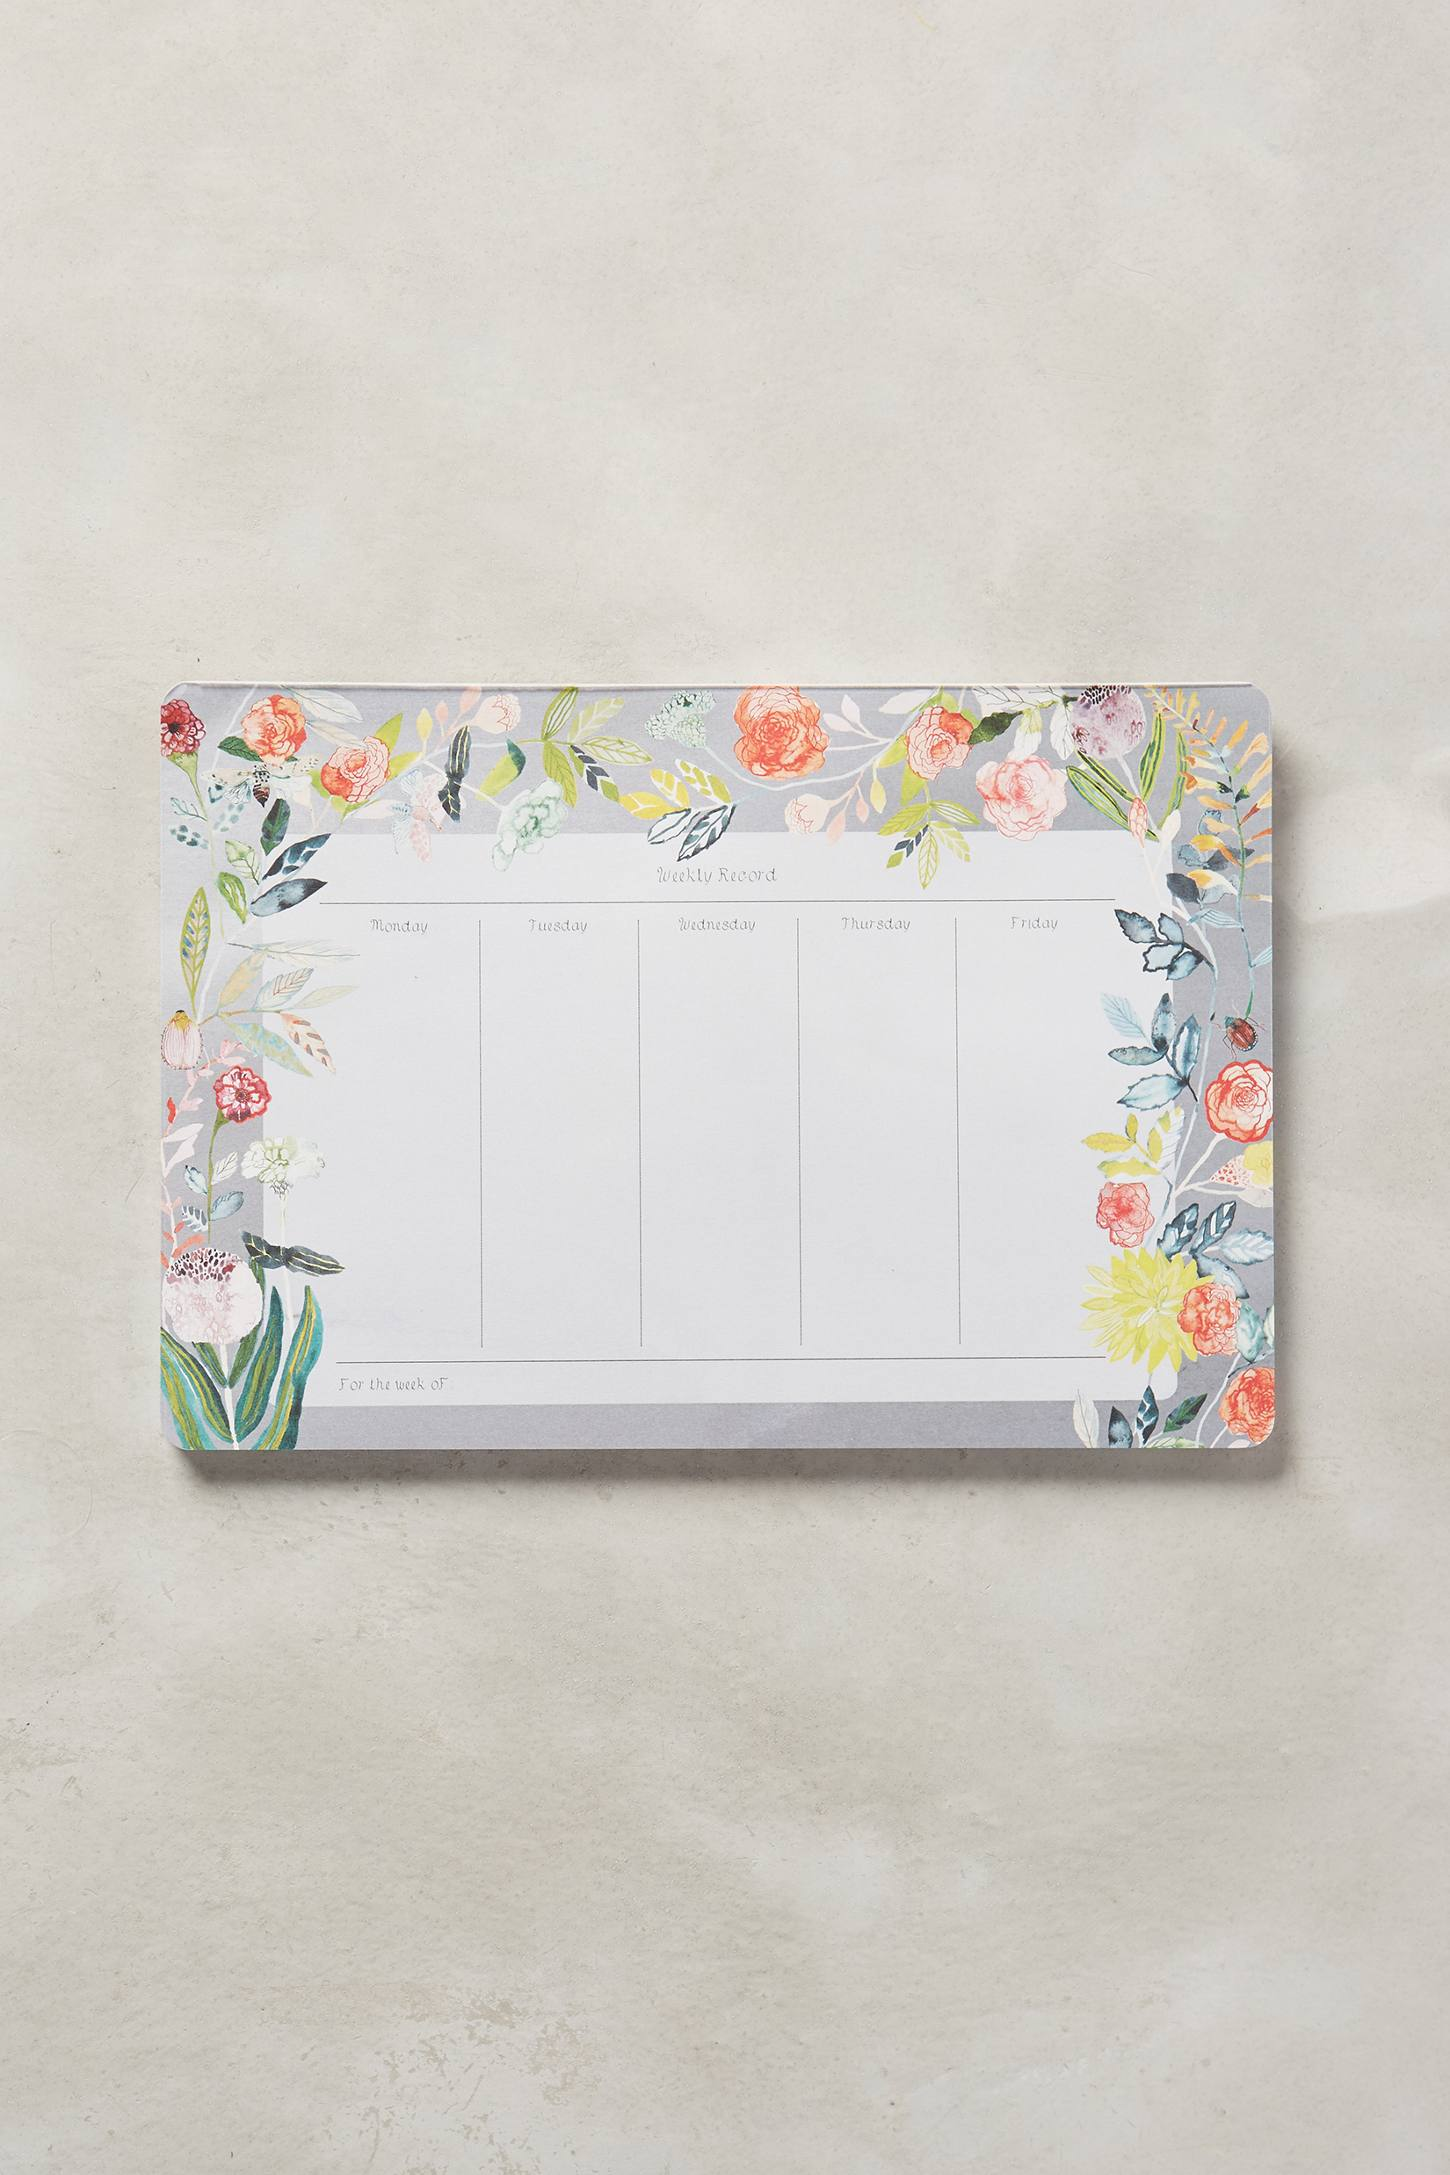 Floral mouse pad calendar from Anthropologie